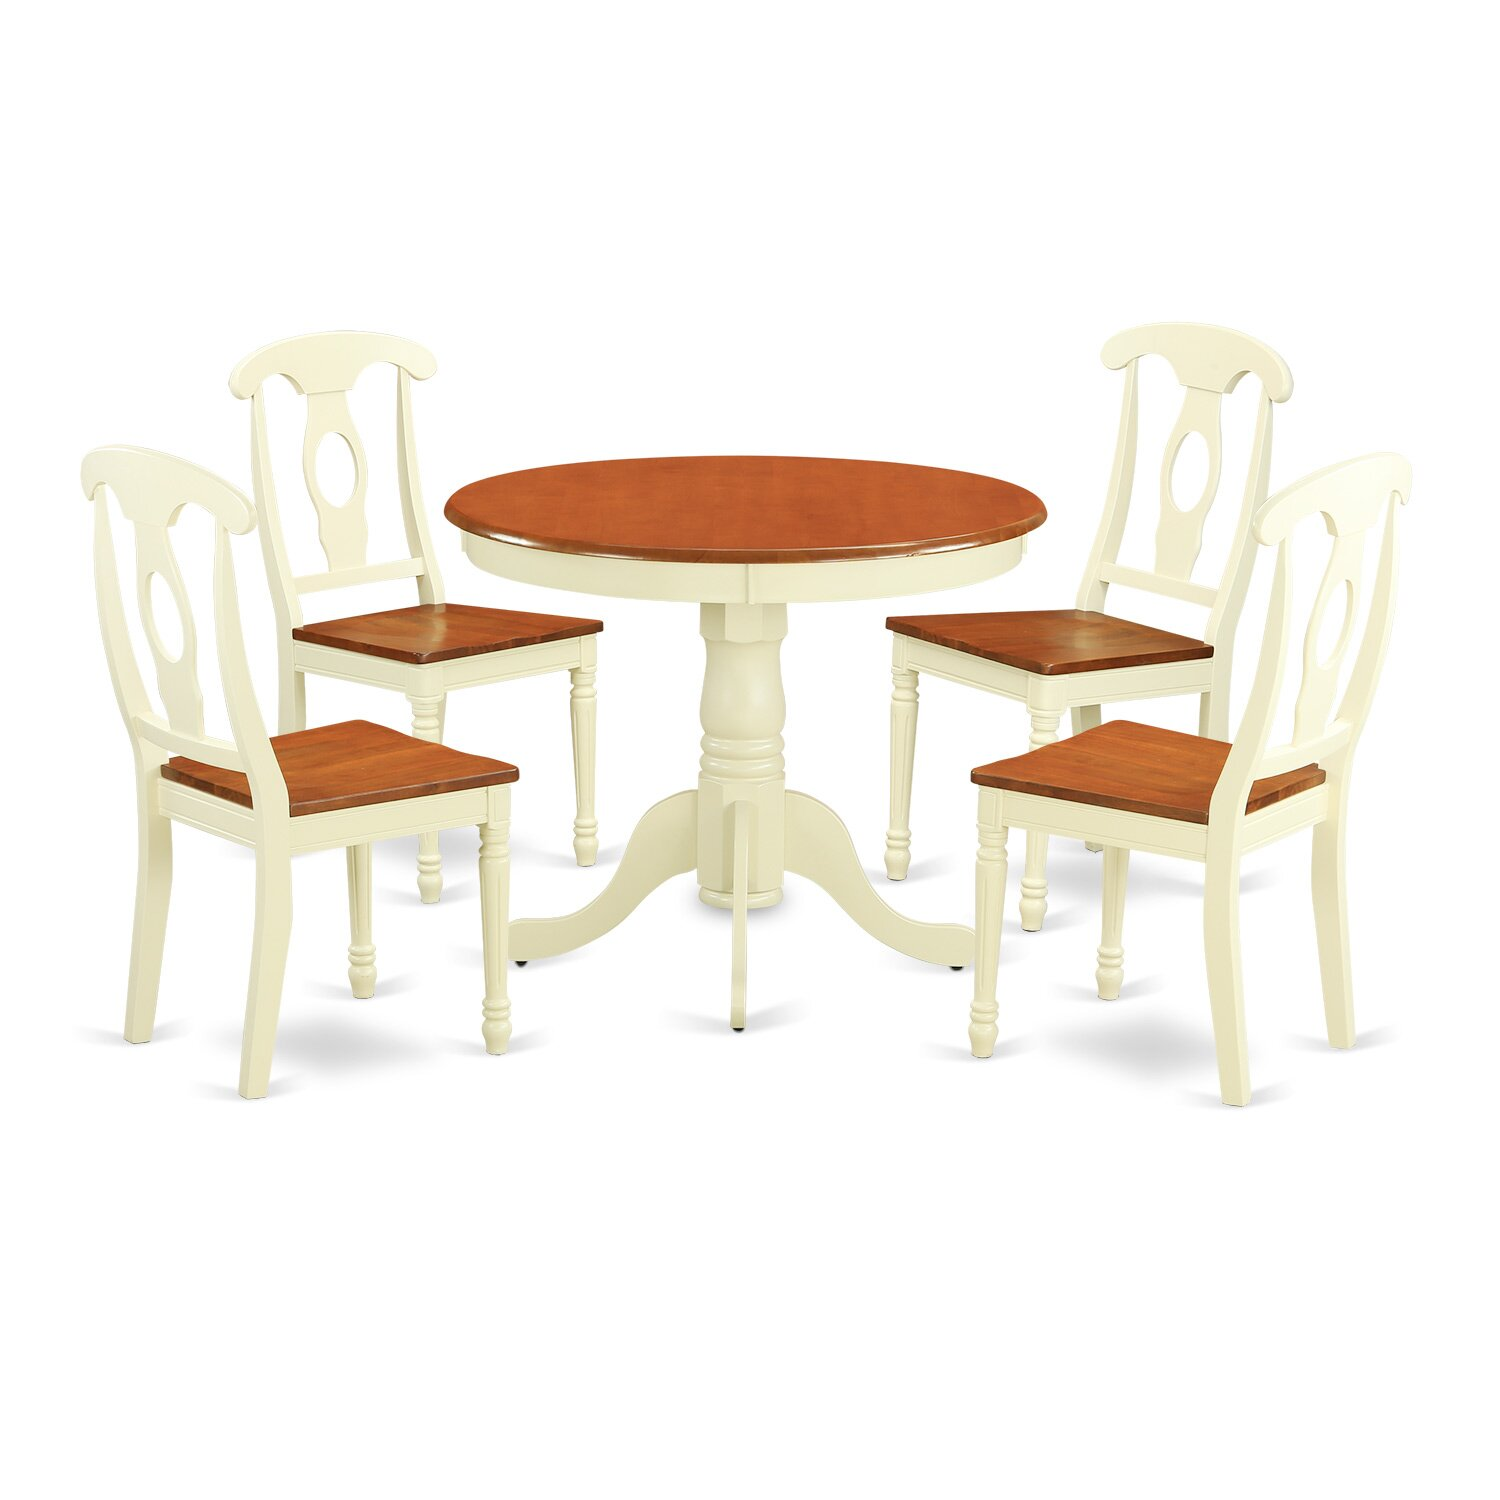 East west 5 piece dining set wayfair for Kitchen dinette sets